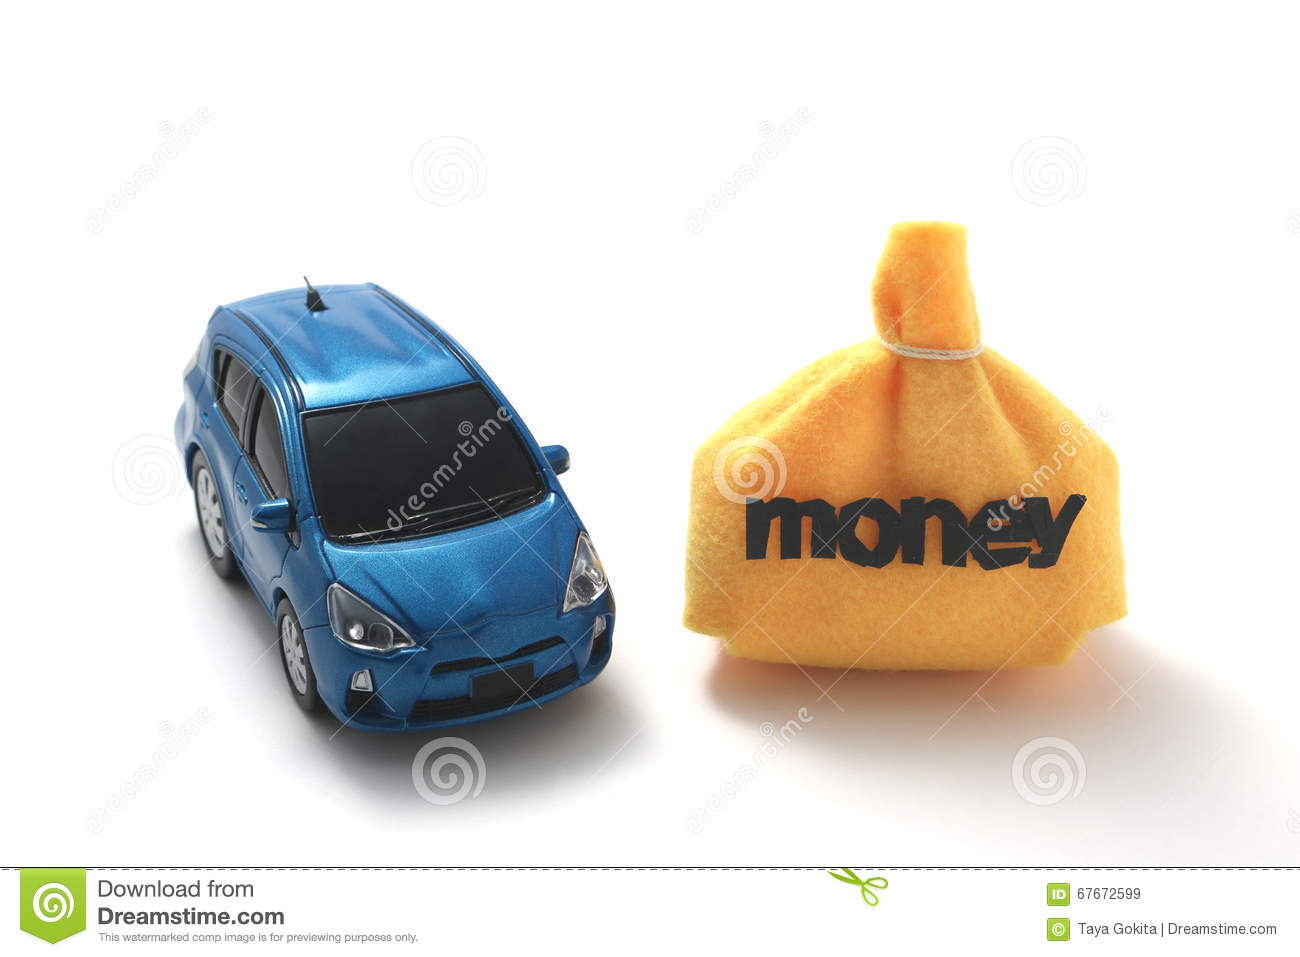 how to buy a car with laundered money